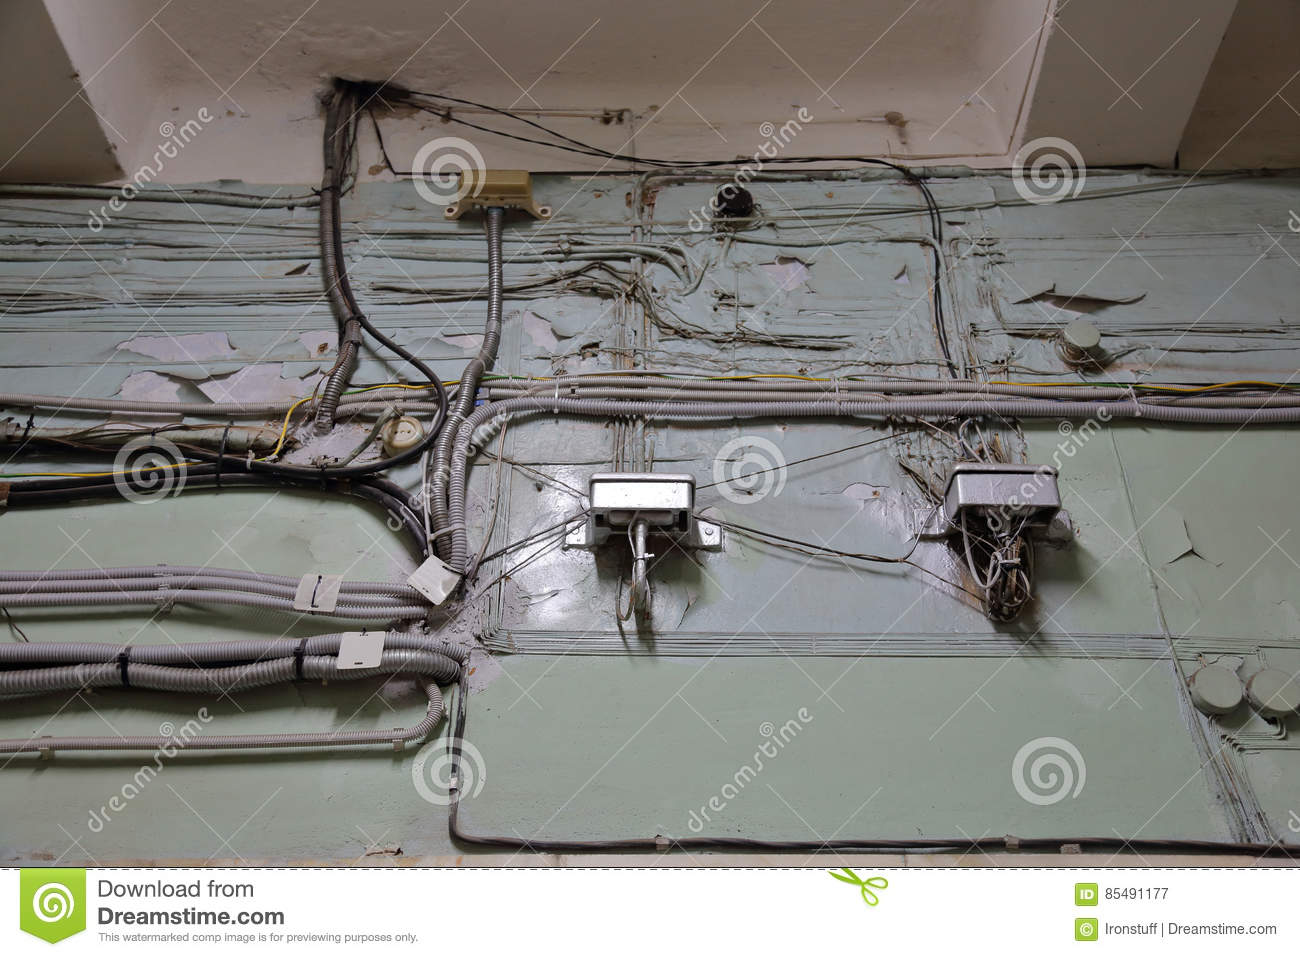 Sloppy old wiring stock image. Image of chaotic, wire - 85491177